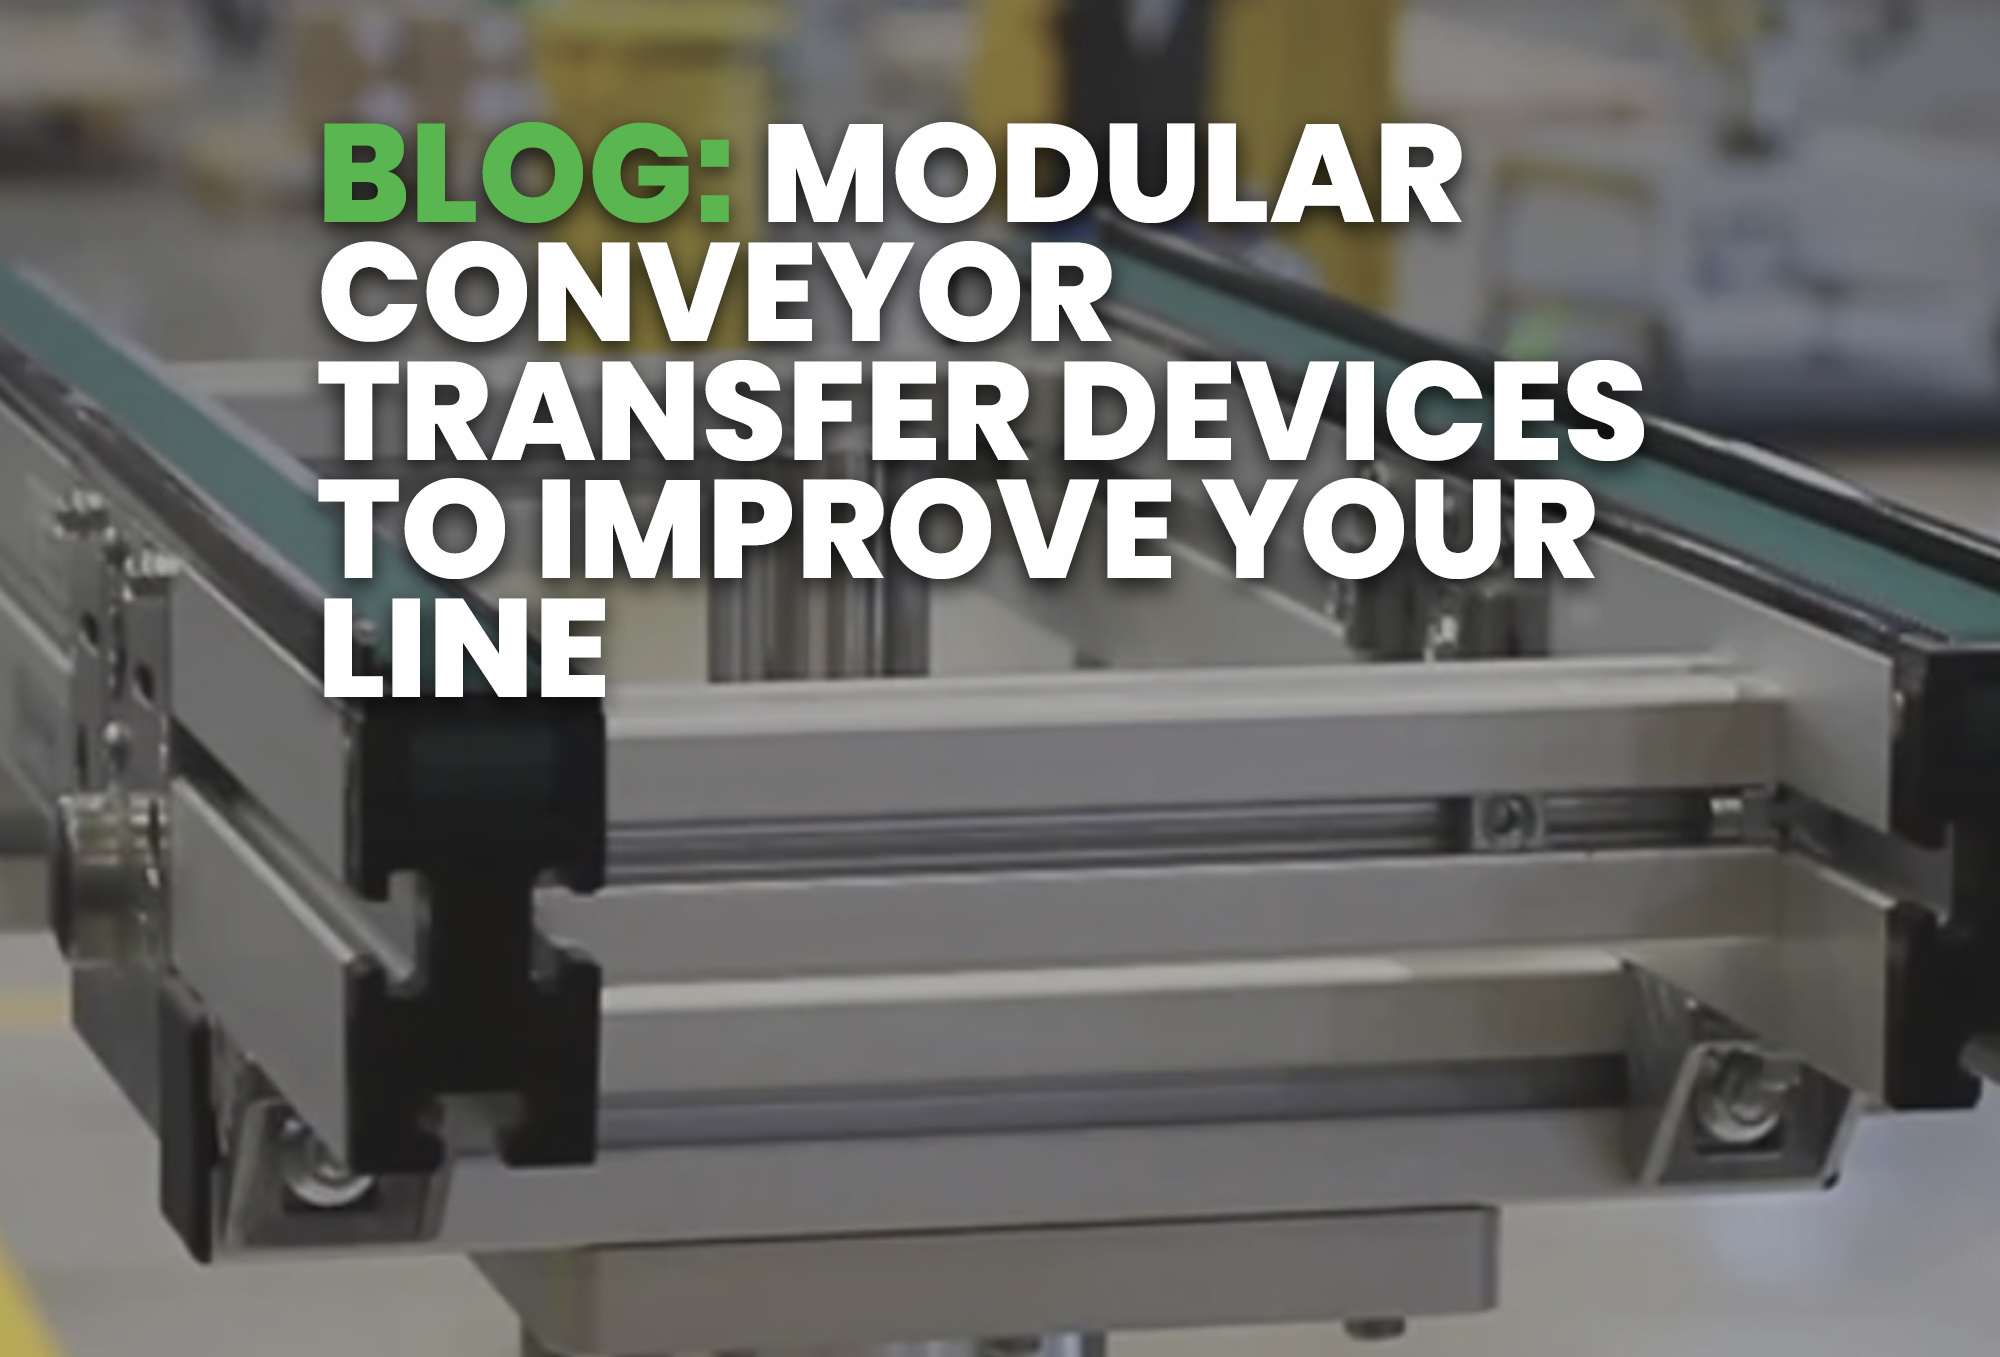 BLOG- Modular Conveyor Transfer Devices To Improve Your Line